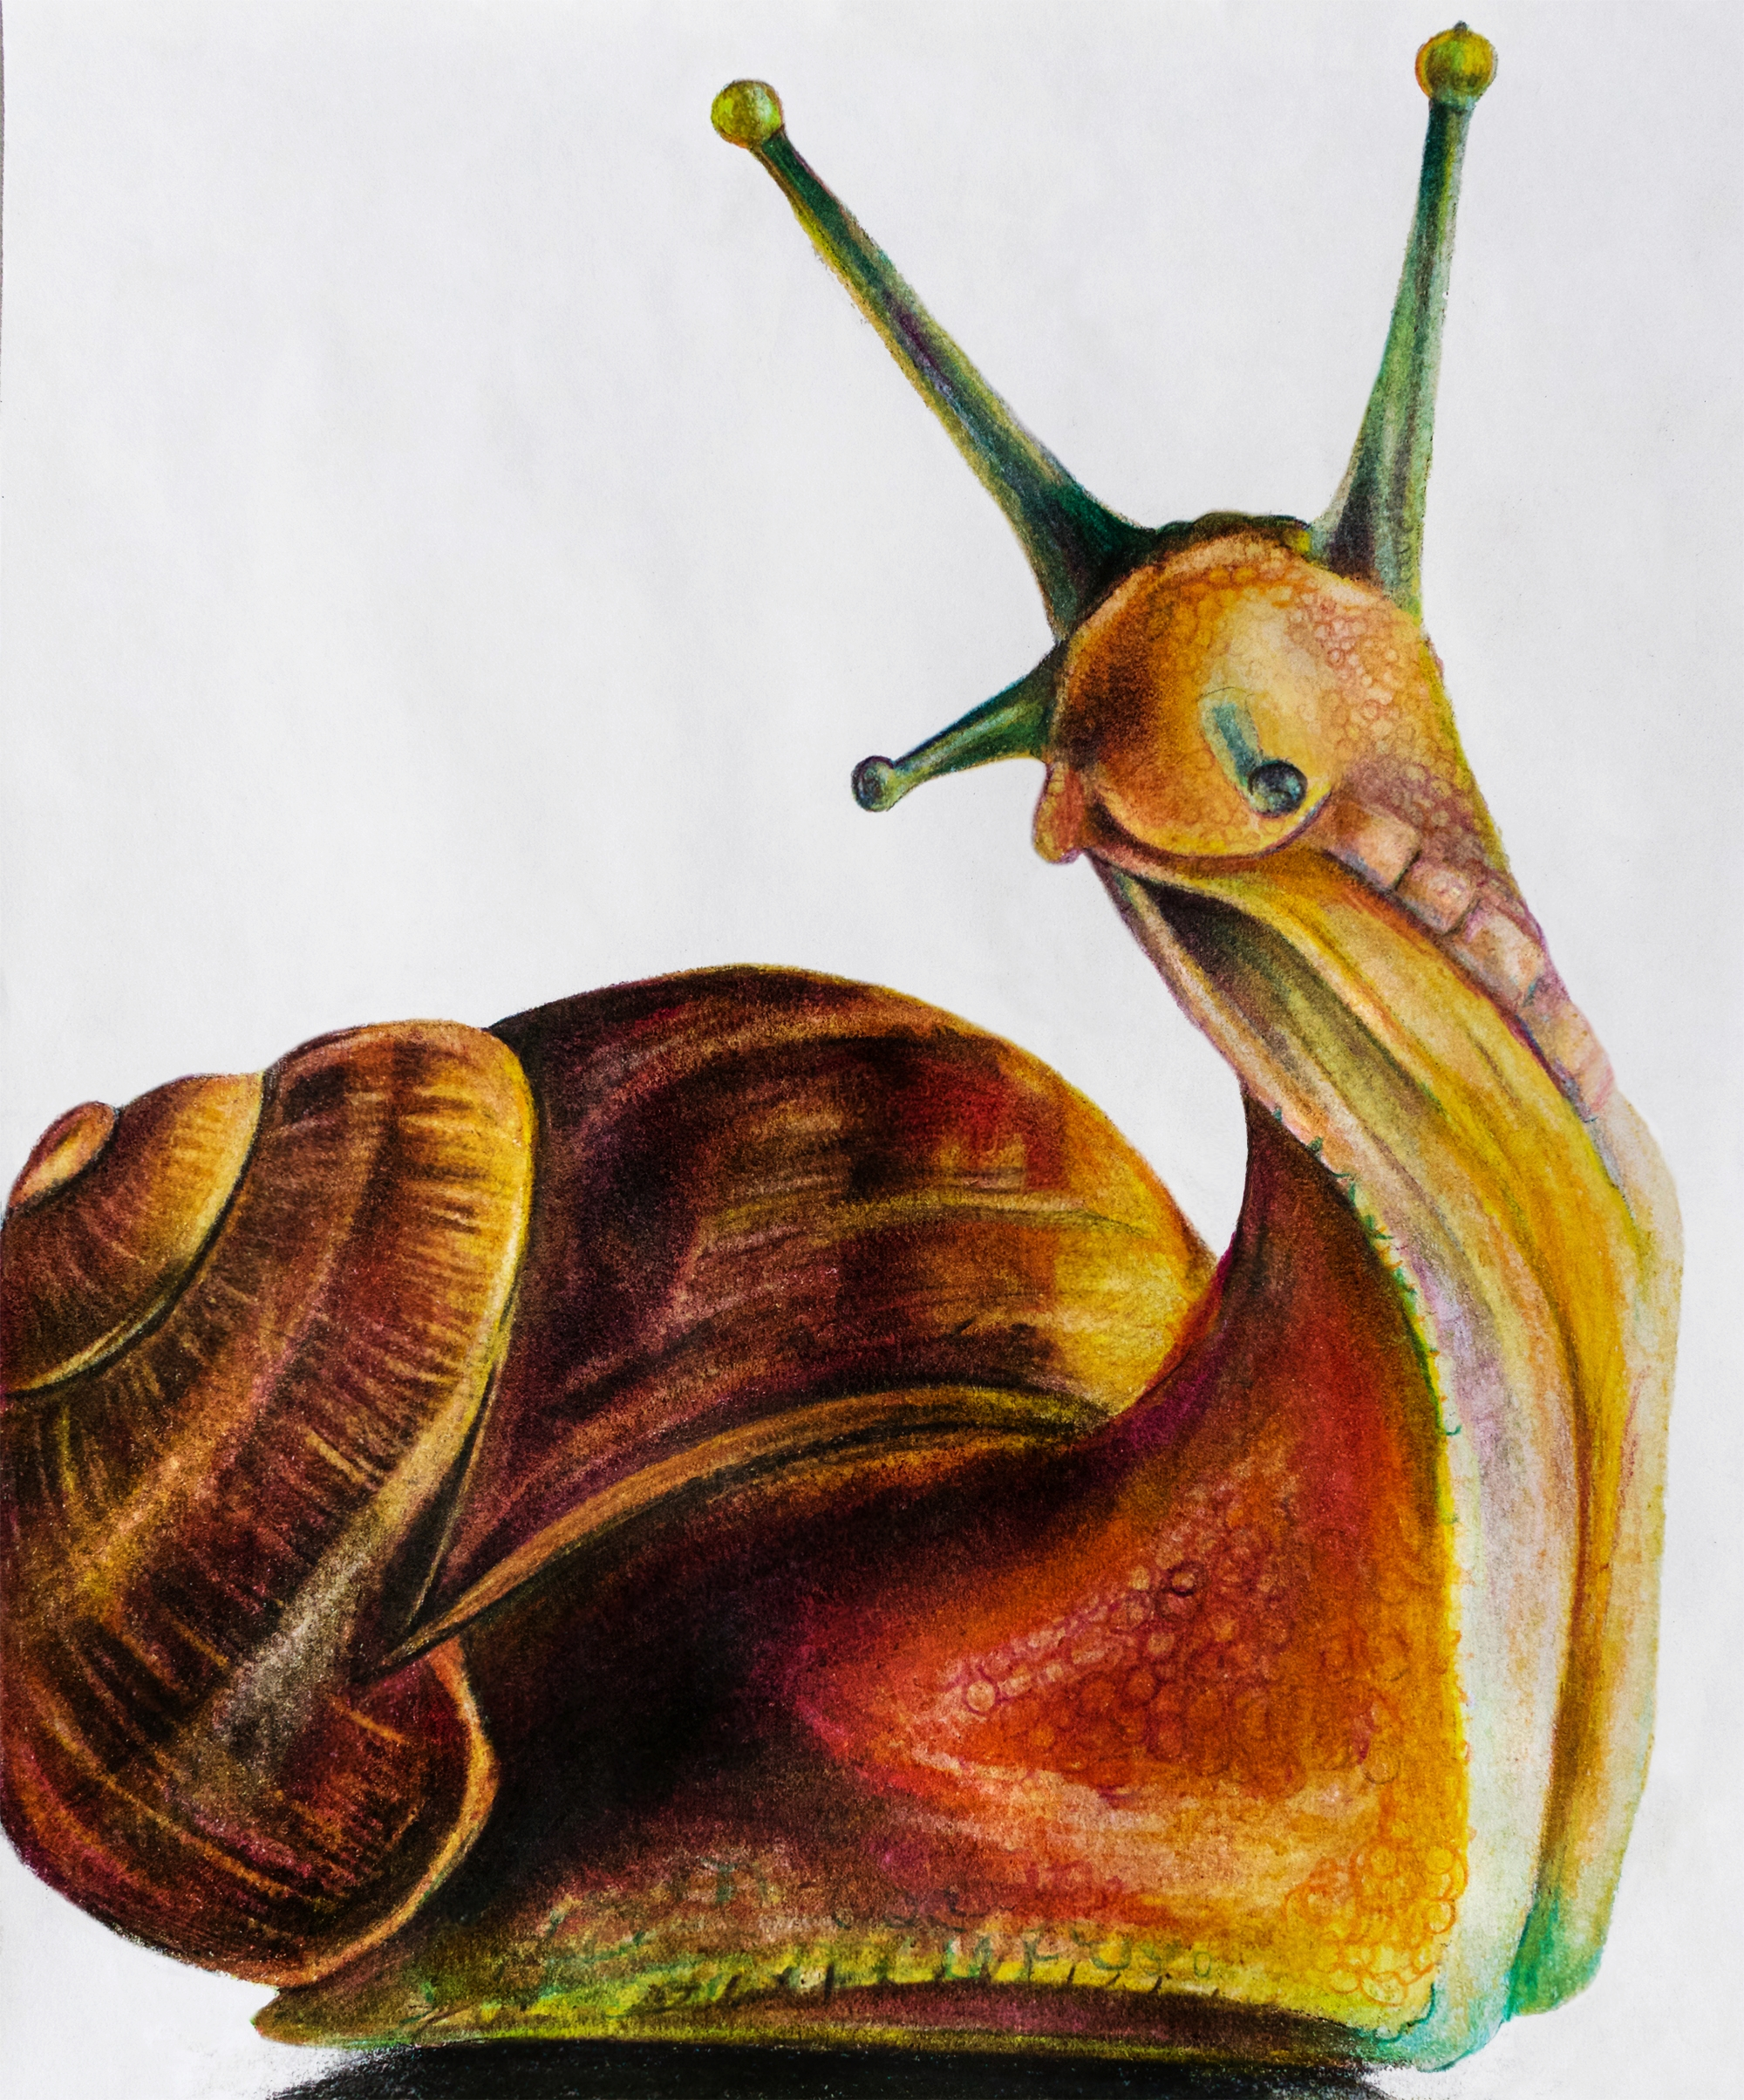 Snail, 2017, colored pencils on paper, 8.5x11""